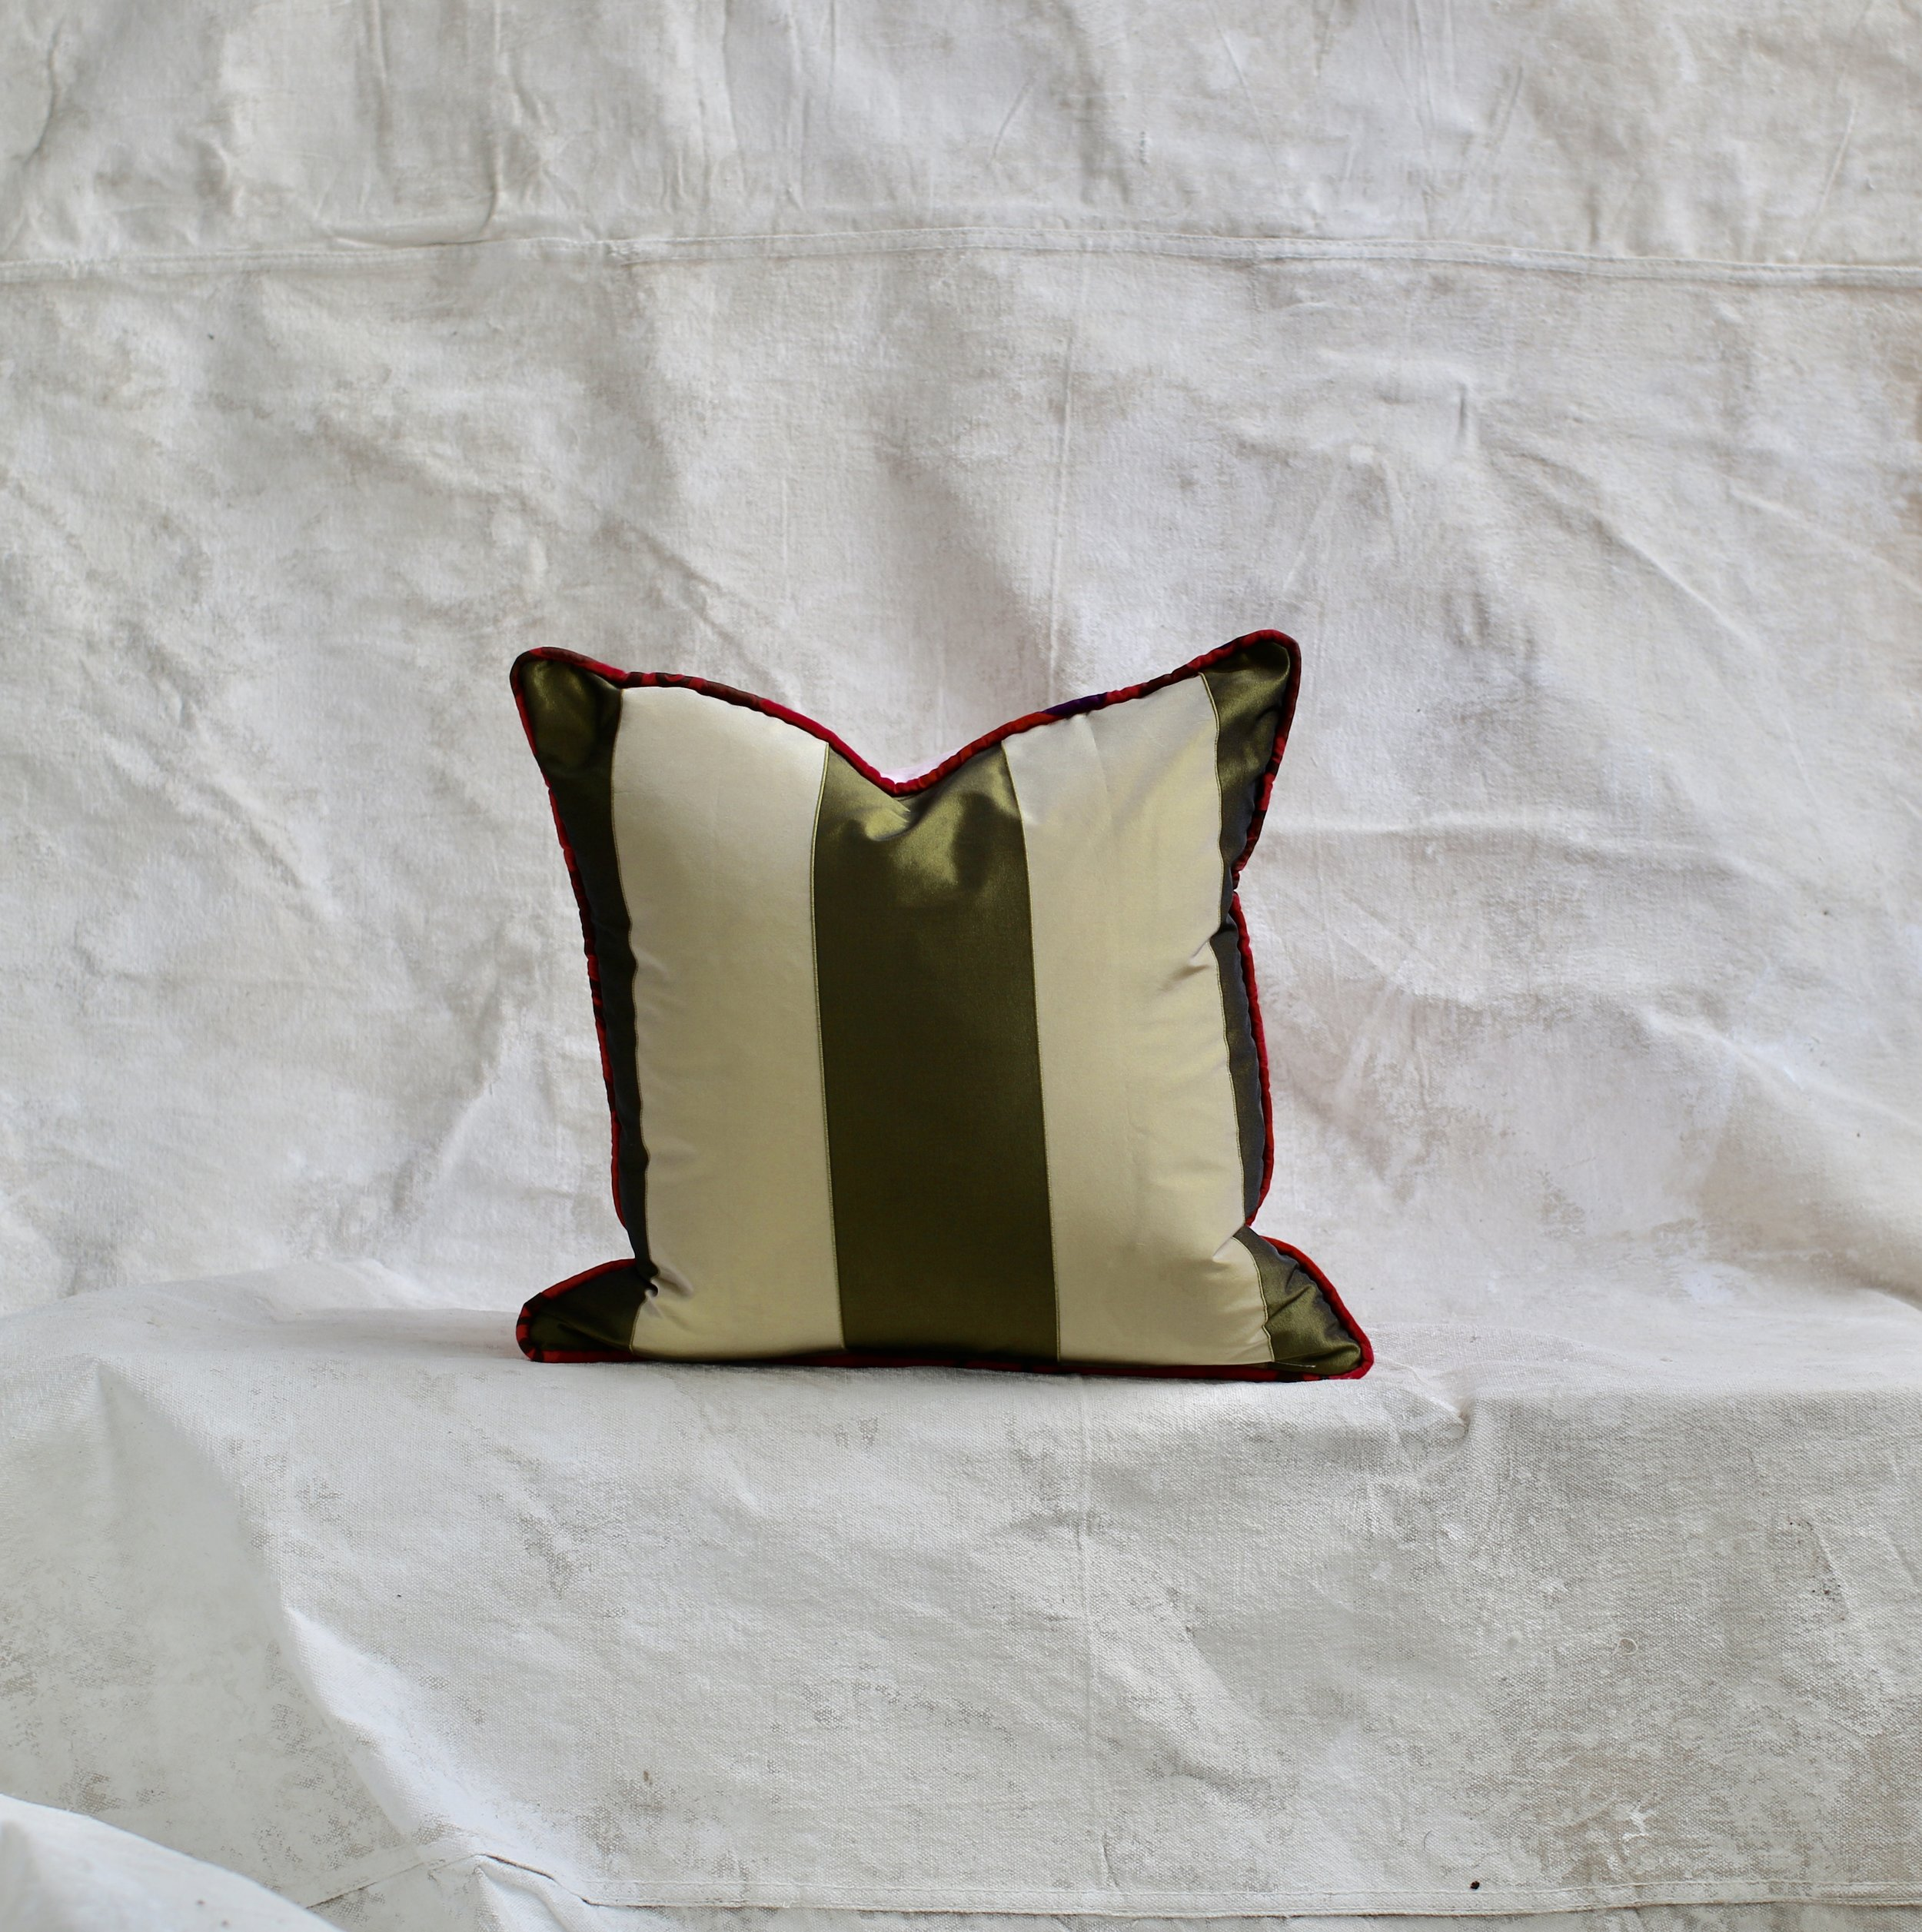 Throw Pillow No. 30 - Handcrafted by Molly Ward Pillows $98